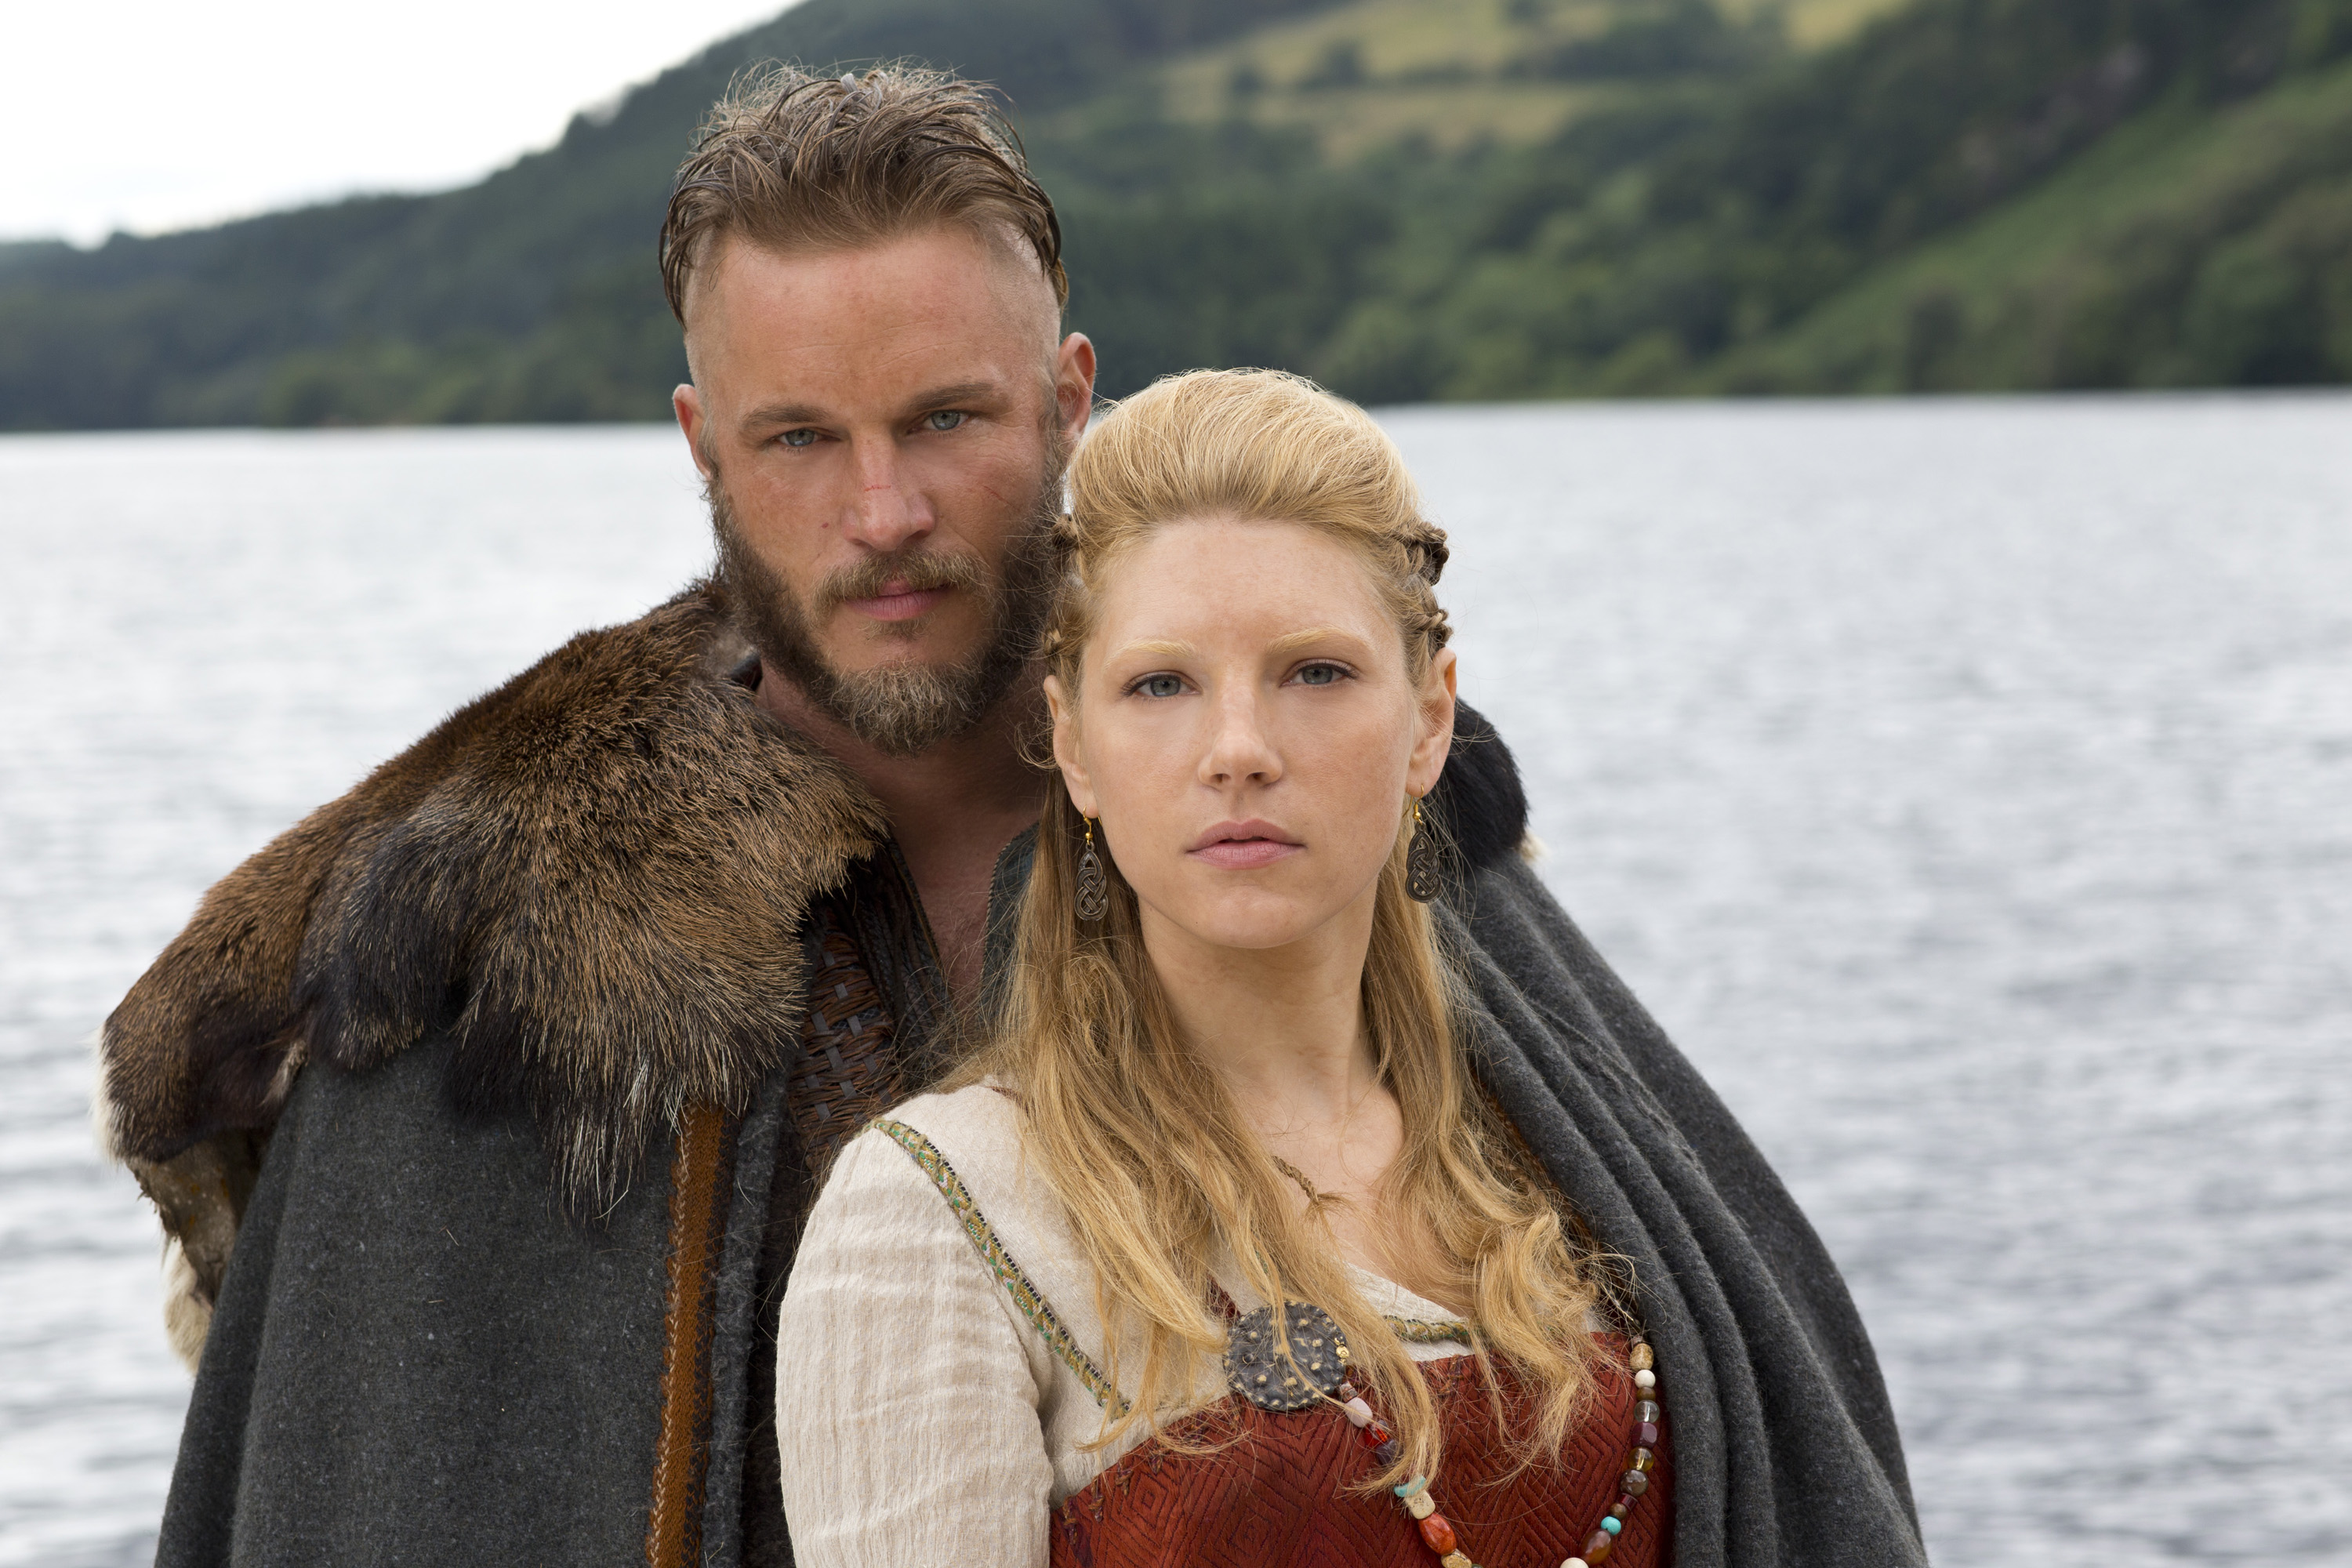 The Vikings head back to England to see what other treasures this new world has to offer.